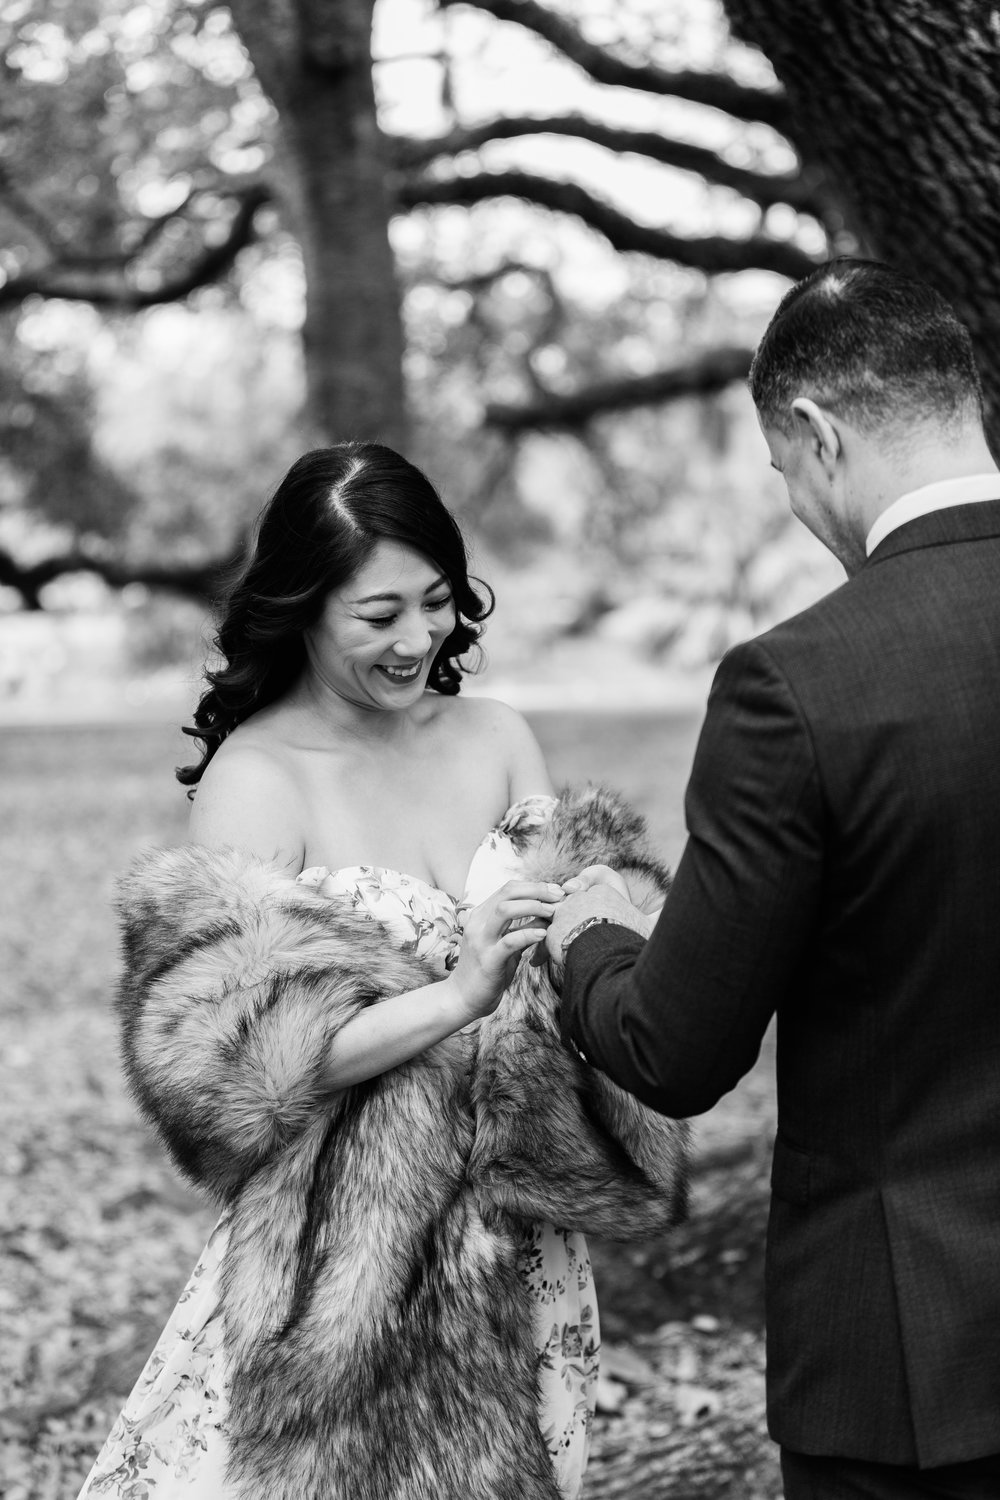 City Park Elopement New Orleans Wedding Photographer Ashley Biltz Photography10.jpg